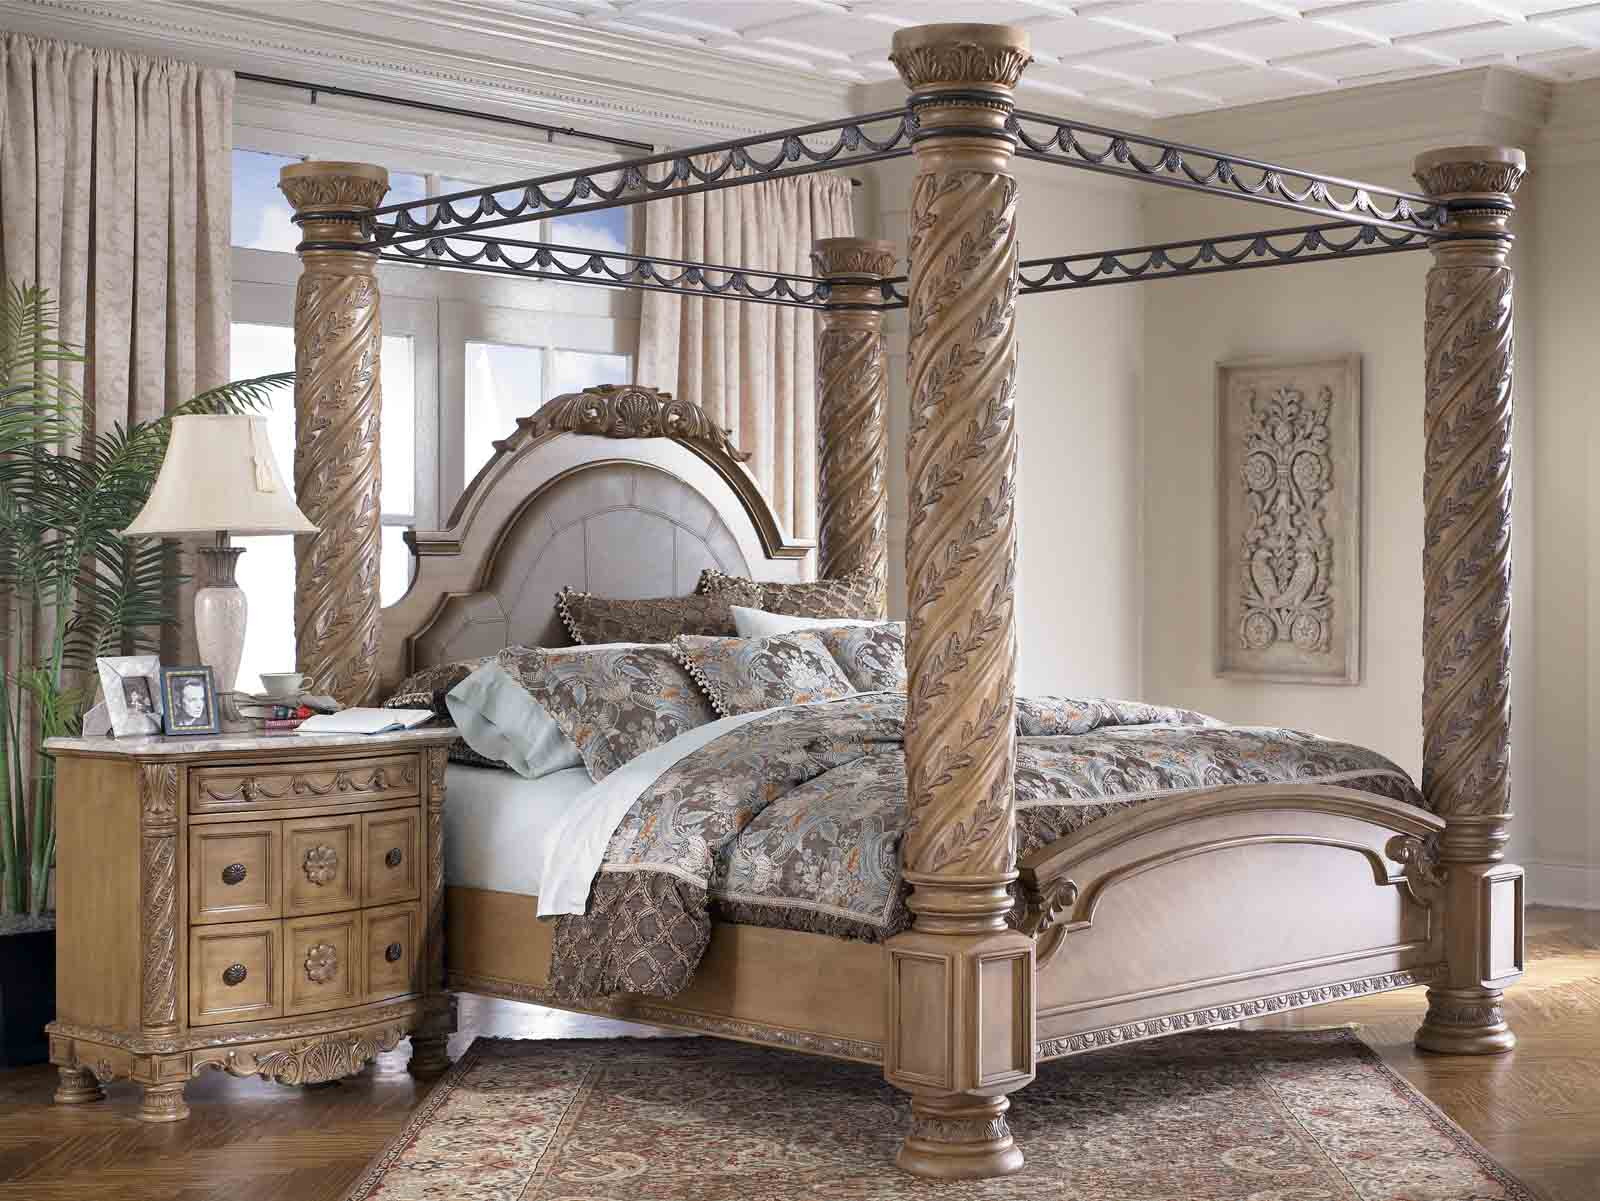 Unique Canopy Beds Furniture For Best Inspirations Ideas